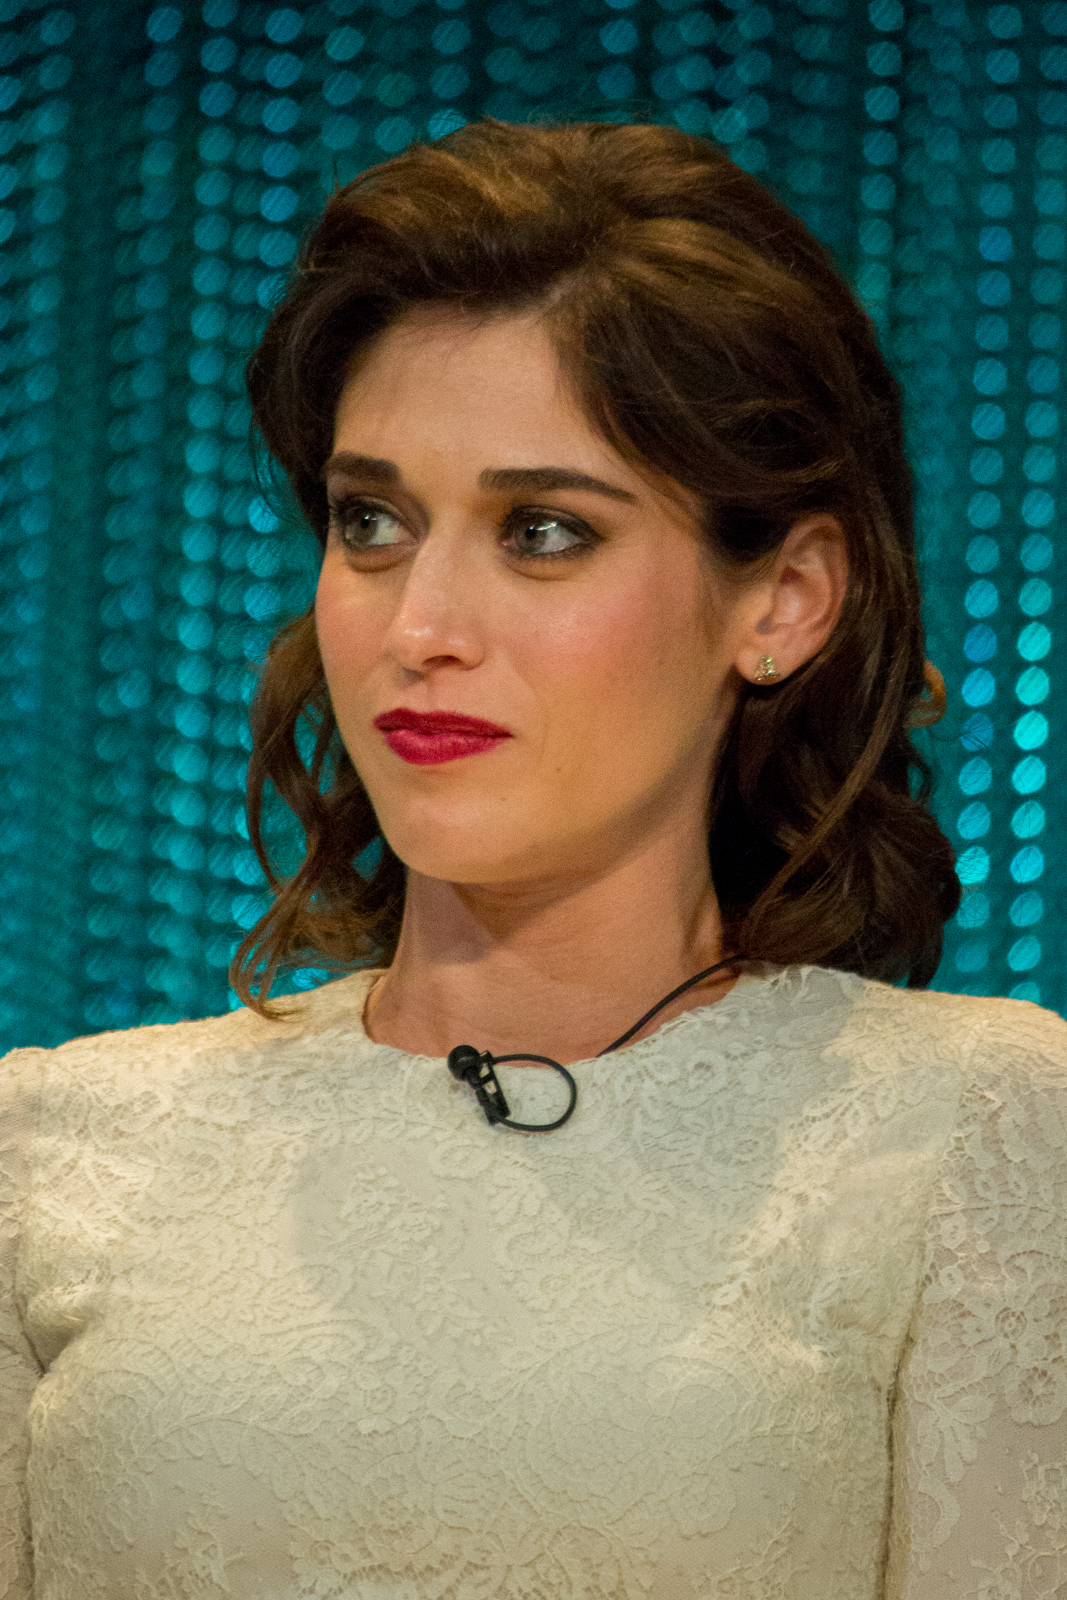 The 36-year old daughter of father (?) and mother(?) Lizzy Caplan in 2018 photo. Lizzy Caplan earned a  million dollar salary - leaving the net worth at 4 million in 2018